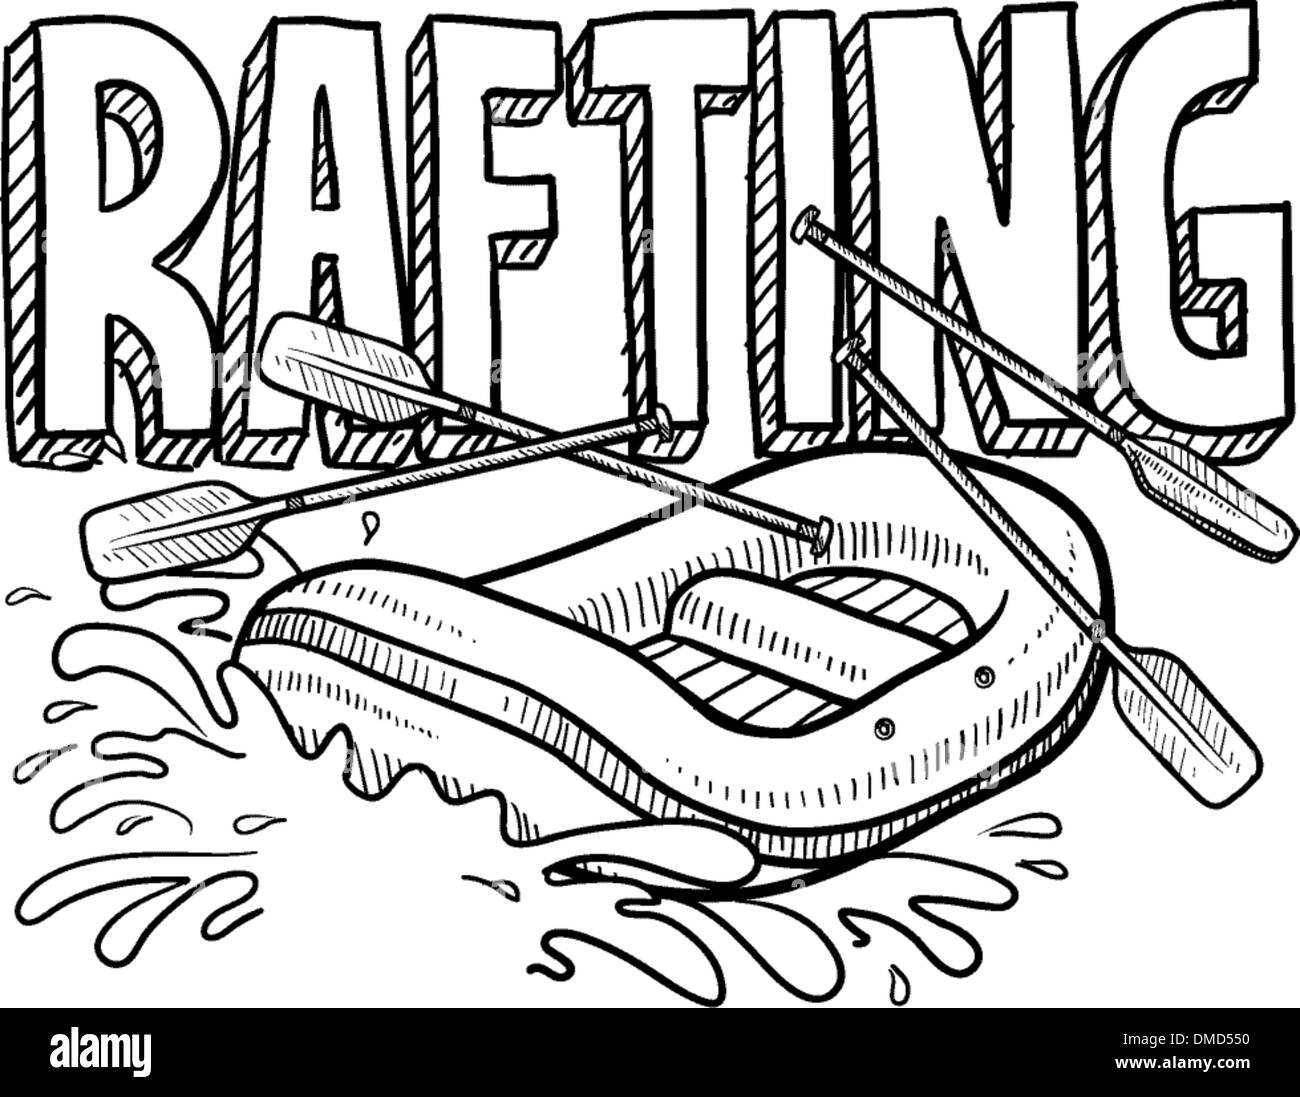 Whitewater rafting sketch - Stock Vector